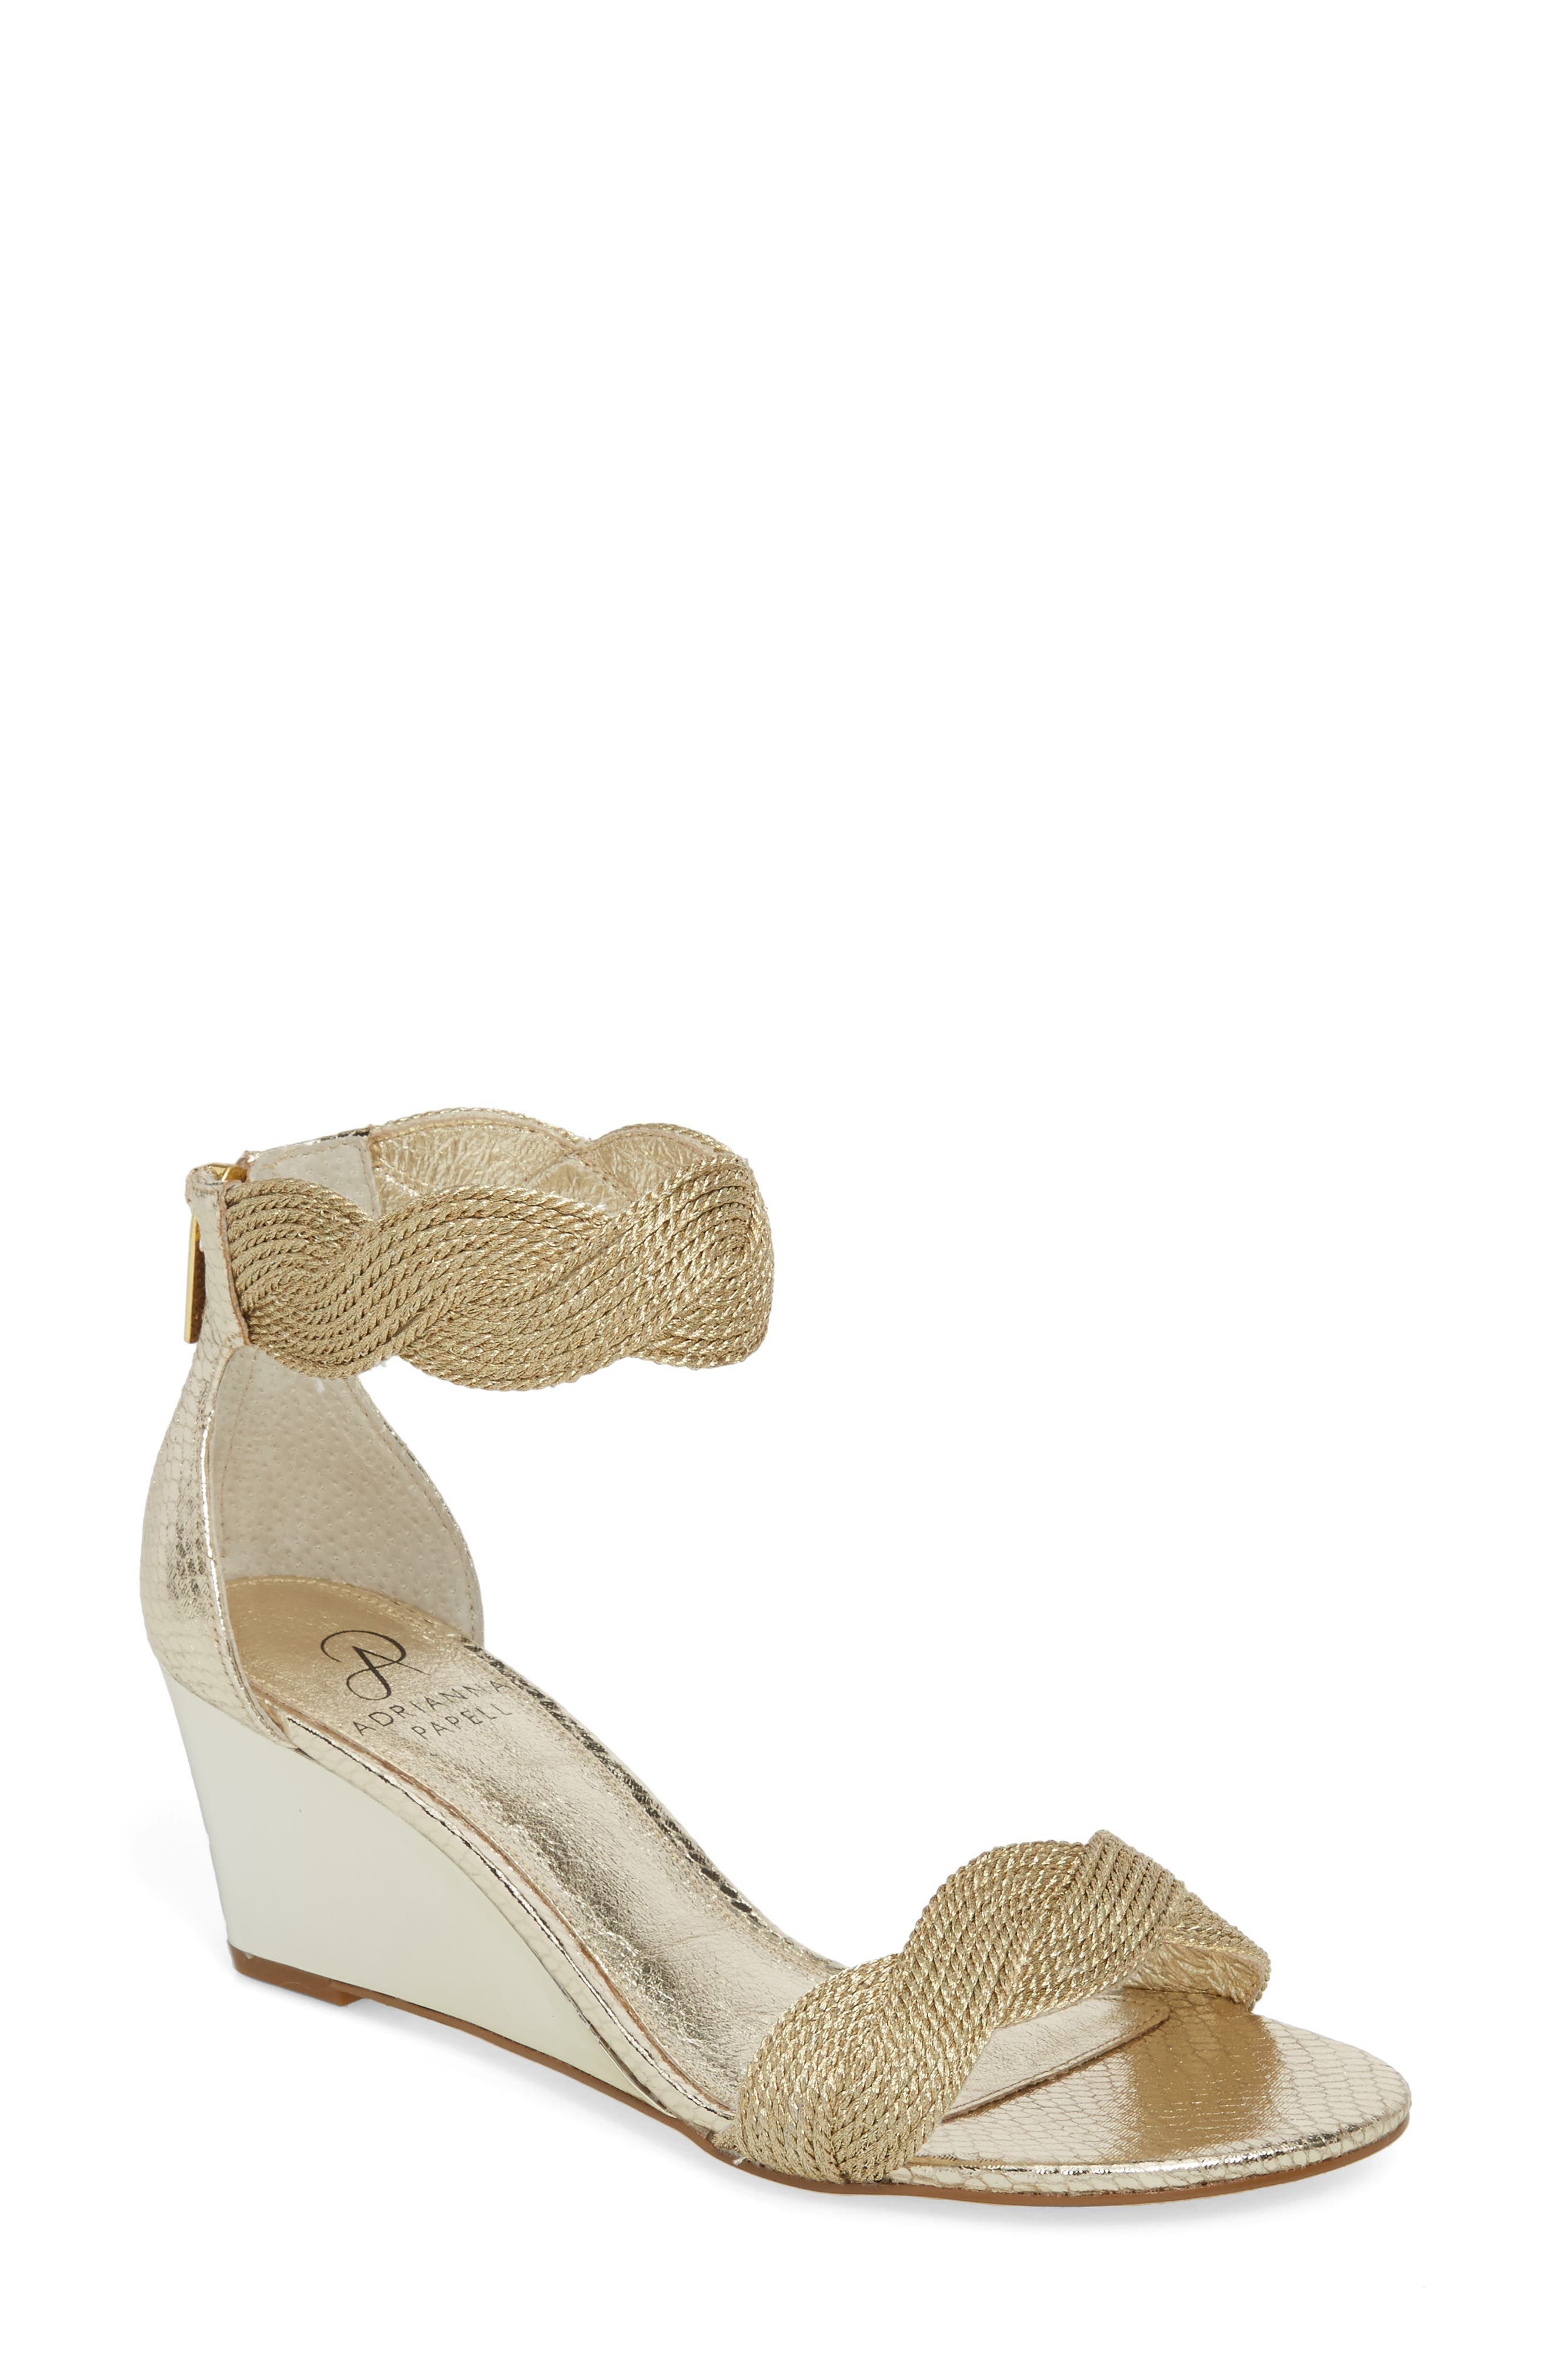 Adrianna Papell Adore Ankle Strap Sandal (Women)